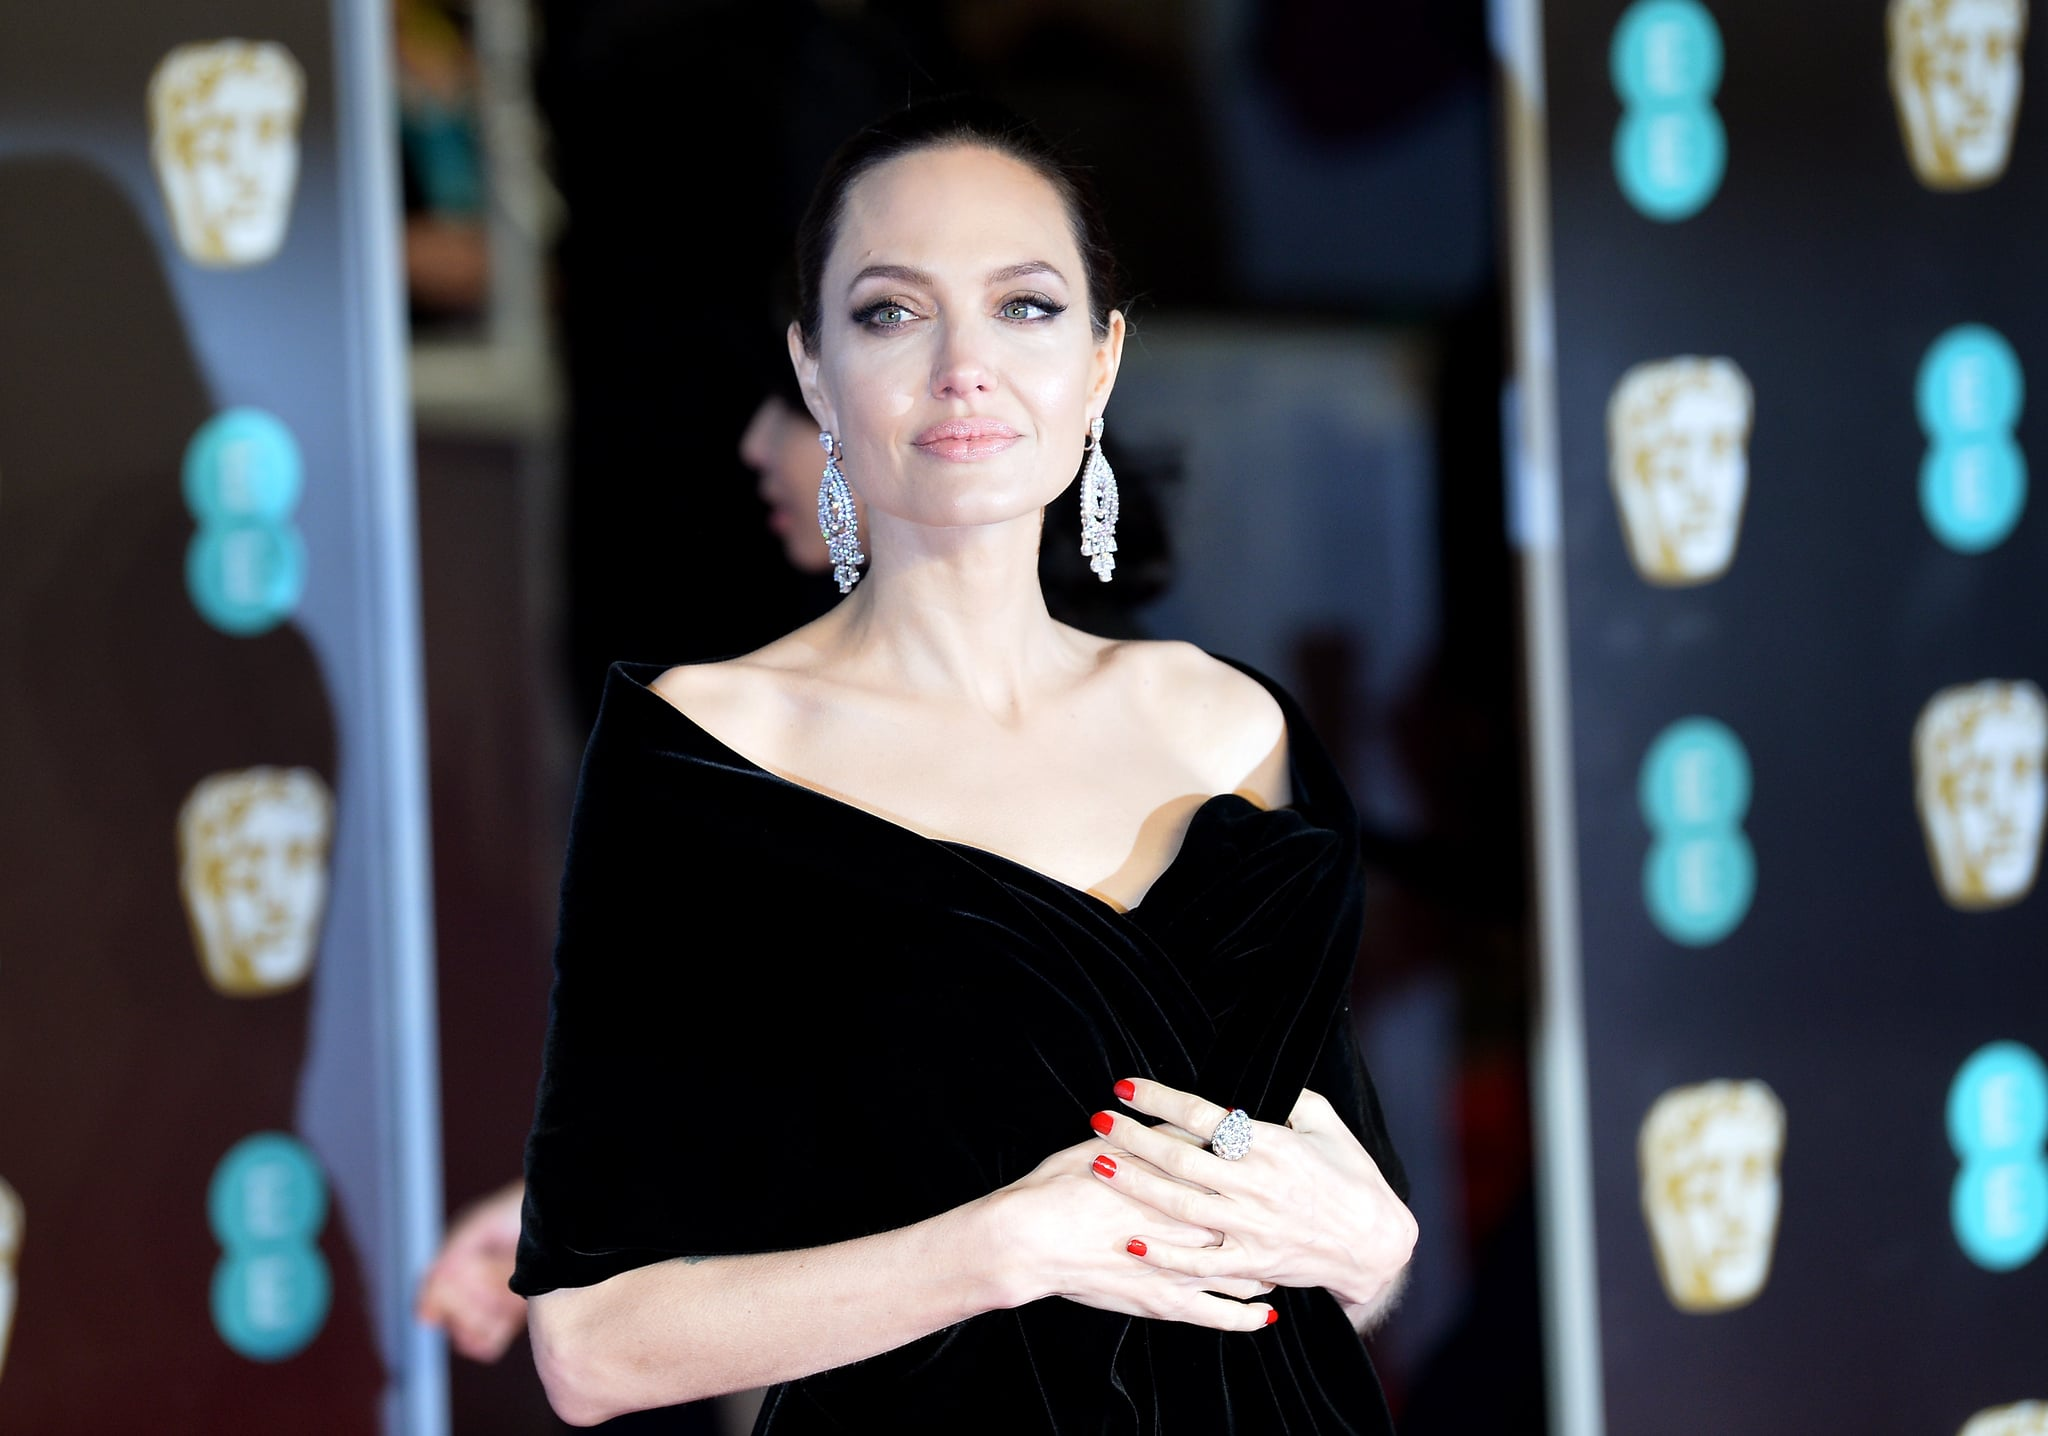 LONDON, ENGLAND - FEBRUARY 18:  Angelina Jolie attends the EE British Academy Film Awards (BAFTA) held at Royal Albert Hall on February 18, 2018 in London, England.  (Photo by Jeff Spicer/Jeff Spicer/Getty Images)